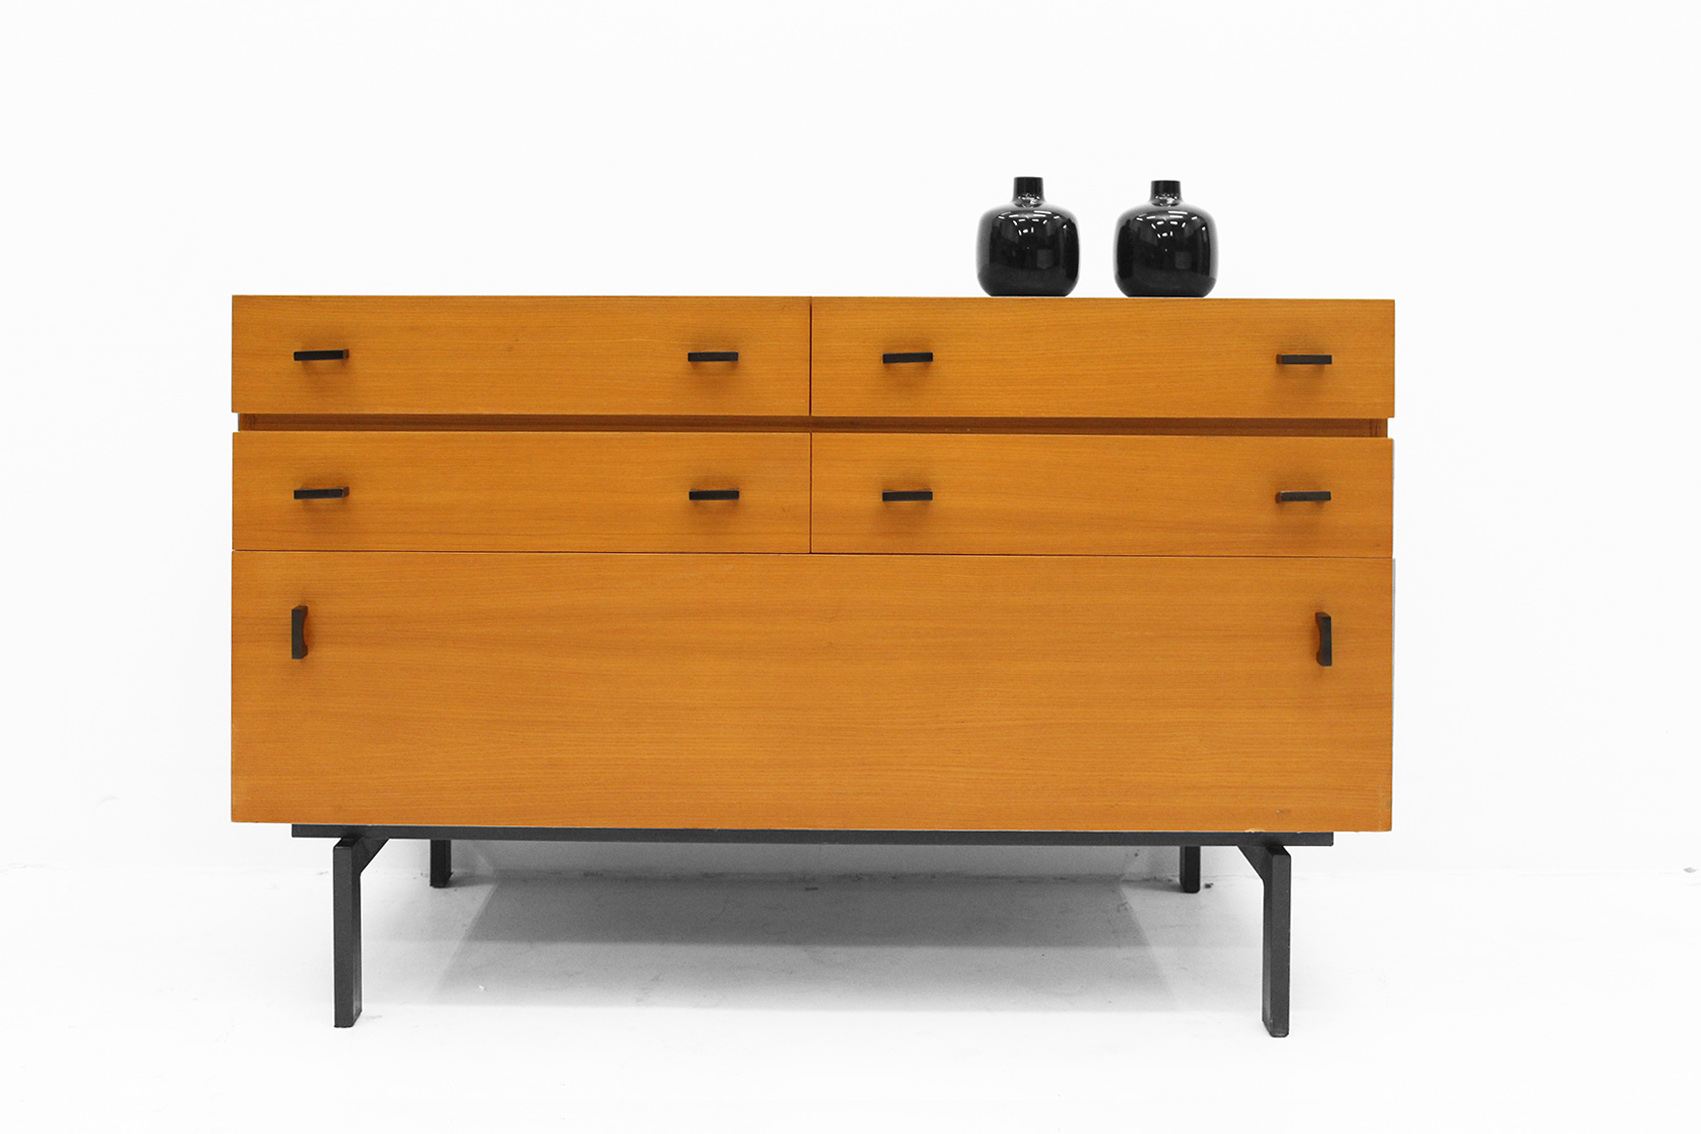 Chest of drawers for office or home